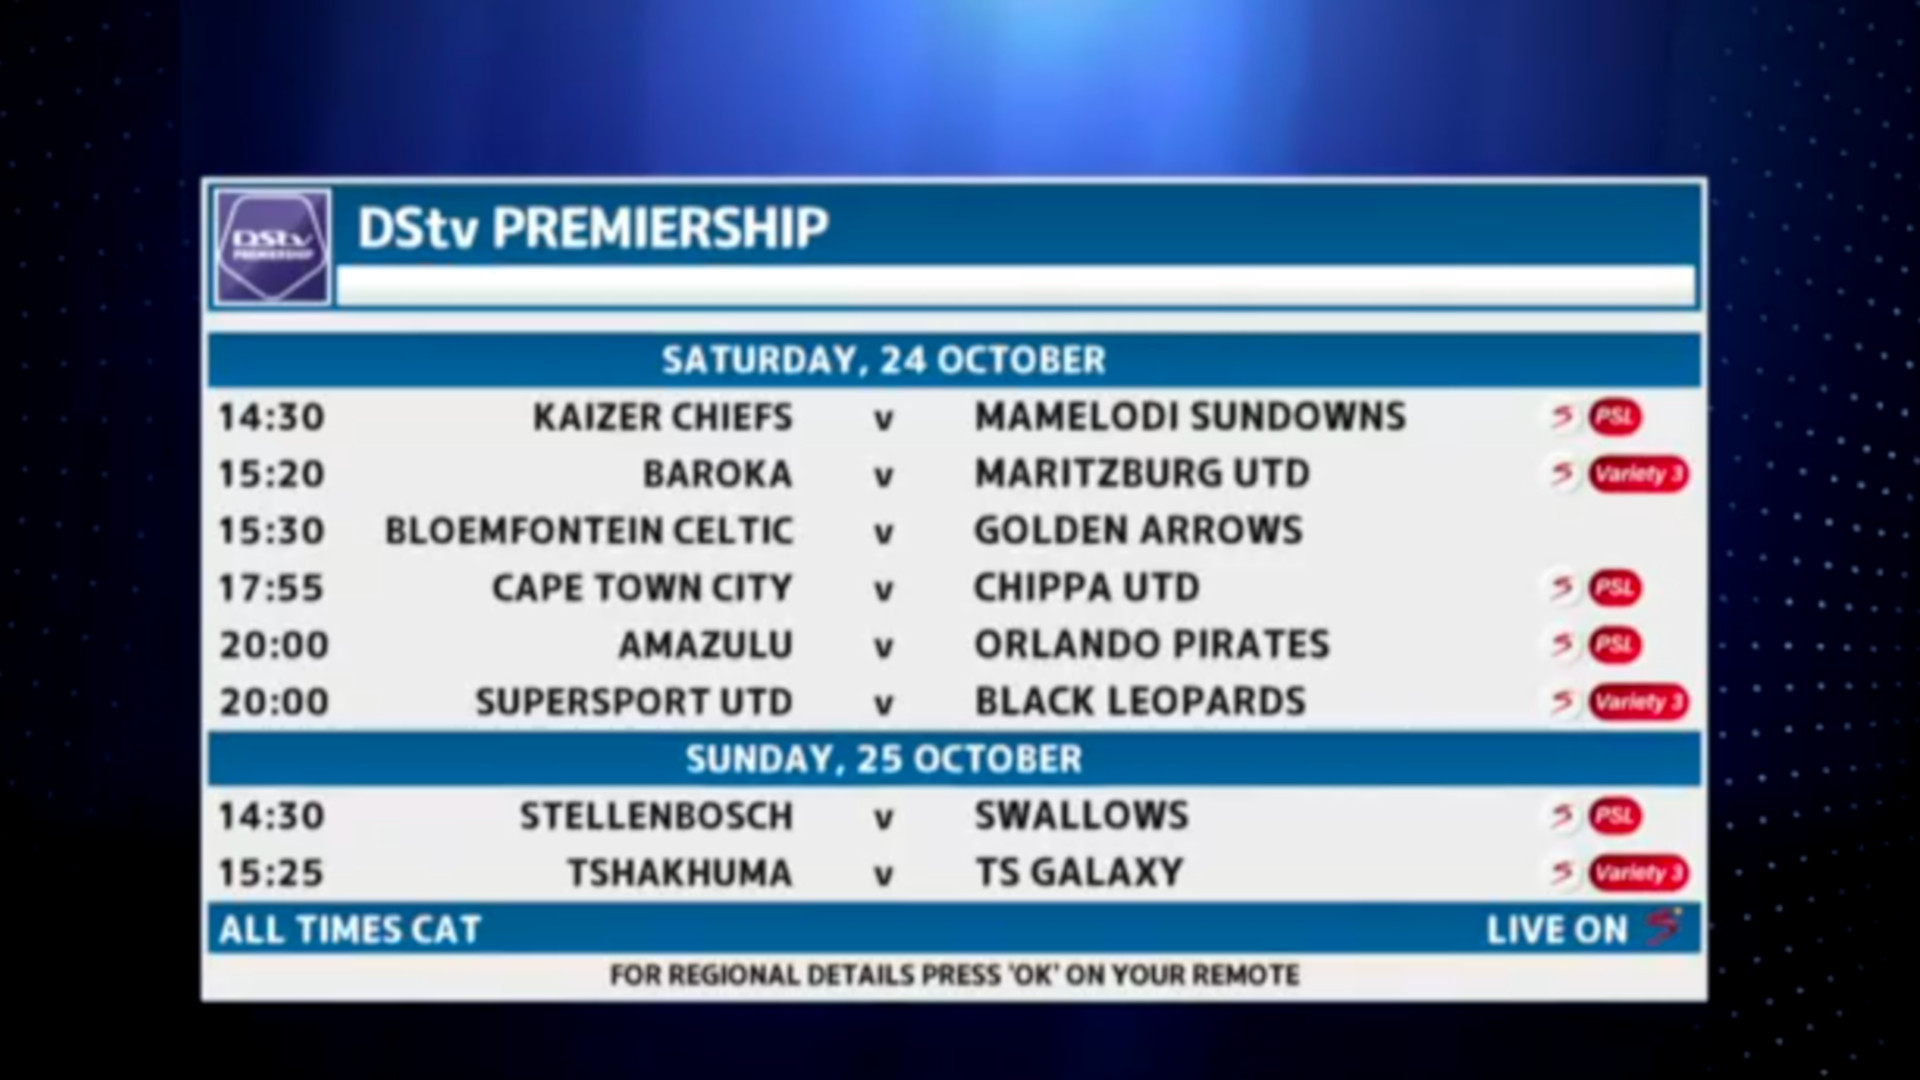 DStv Premiership | TX Date | Saturday 24th October